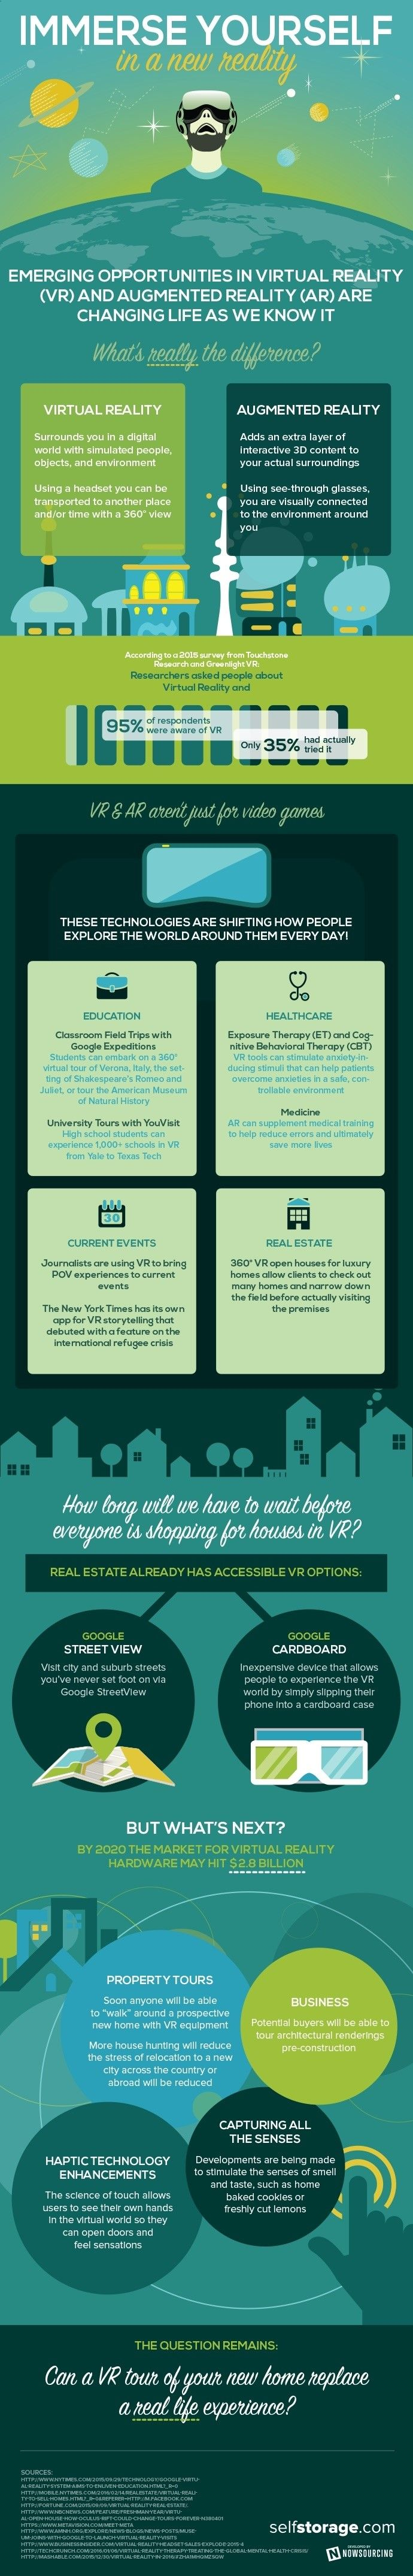 Virtual Reality Glasses - How Virtual Reality will change the World Infographic #Infographics This Wednesday, October 11, the virtual reality company of Facebook Oculus Connect , announced during its annual event some interesting news that come to innovate in the world of virtual reality.